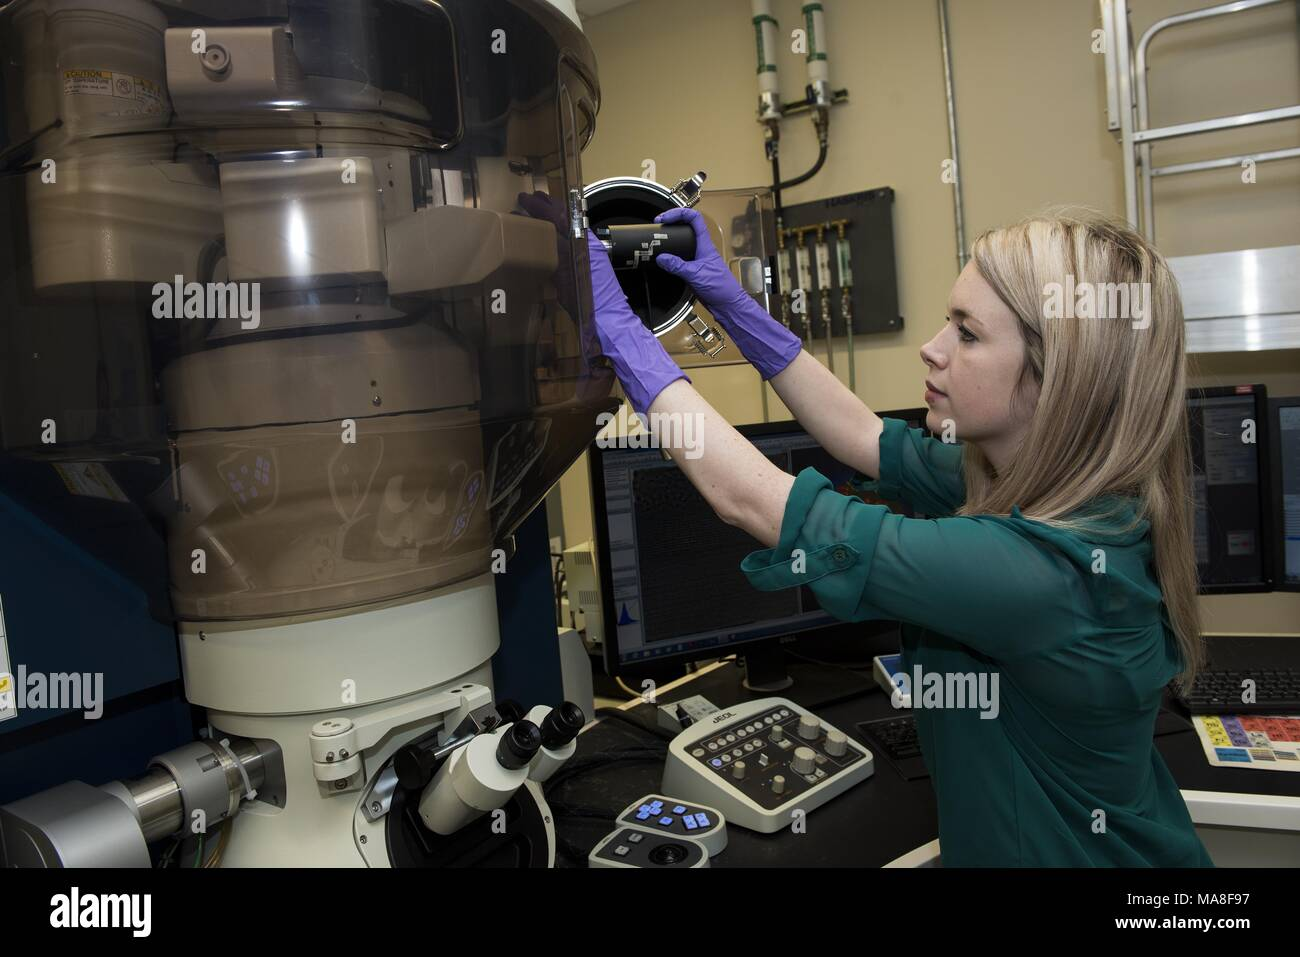 Female researcher uses the Cold Field Emission Scanning Transmission (CFE-STEM) and Transmission Electron Microscope (TEM) in a lab located at Pacific Northwest National Laboratory (PNNL) located in Richland, Washington, image courtesy of the US Department of Energy, November 15, 2016. () - Stock Image